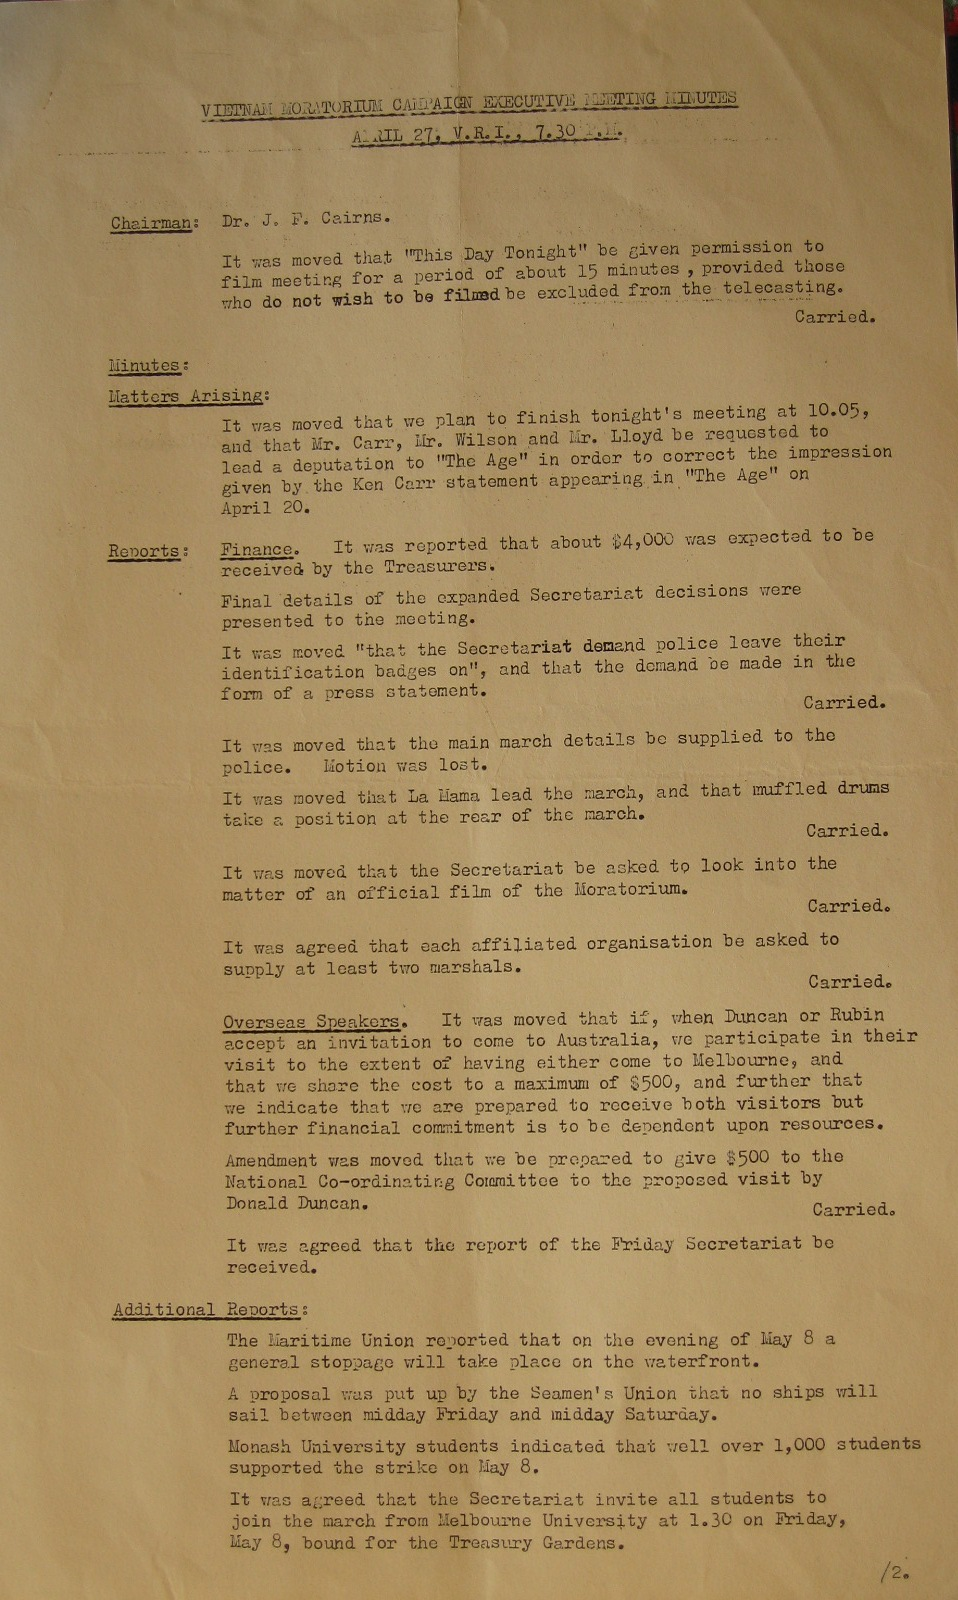 Vietnam Moratorium Campaign Executive Meeting Minutes 27 April 1970.